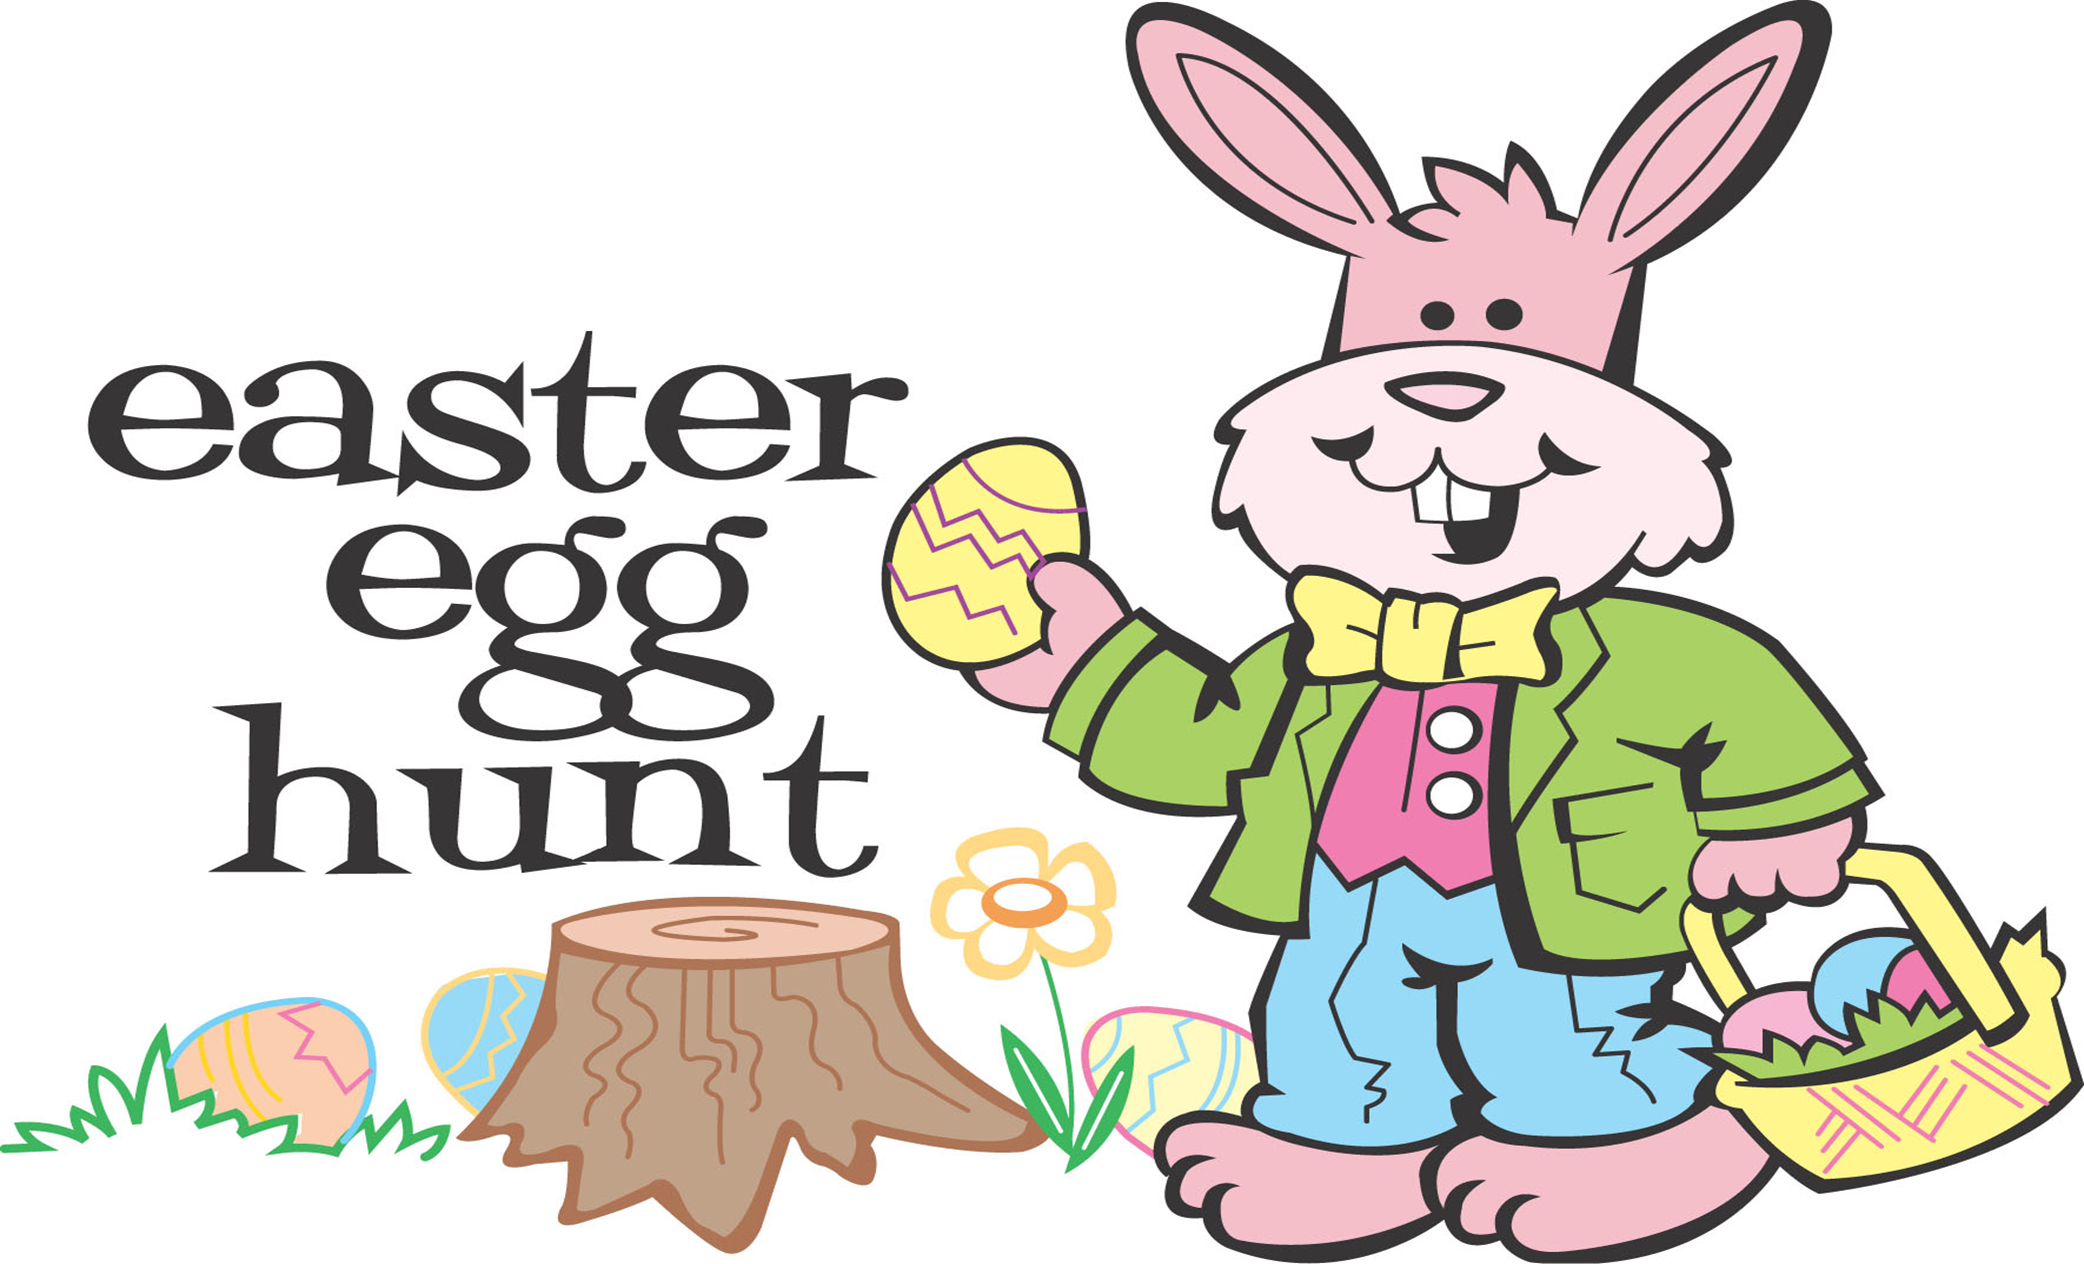 Easter egg hunt clipart border clip library download Esater Egg Hunt Clip Art - ClipArt Best clip library download